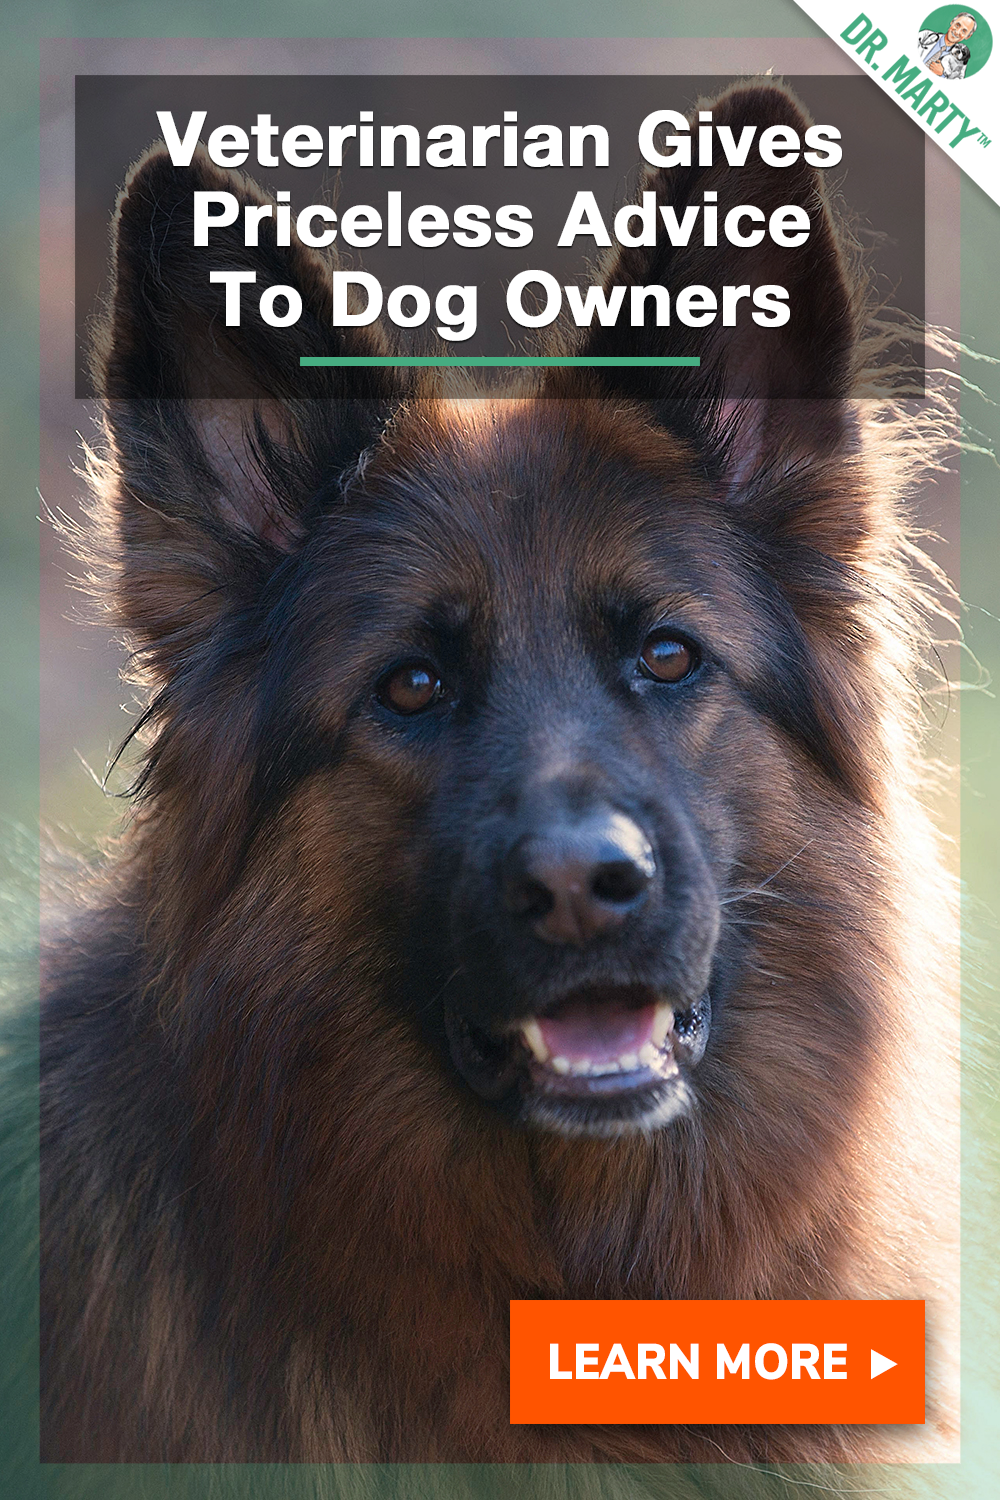 Vets Priceless Advice To Dog Owners Canine care, Dog